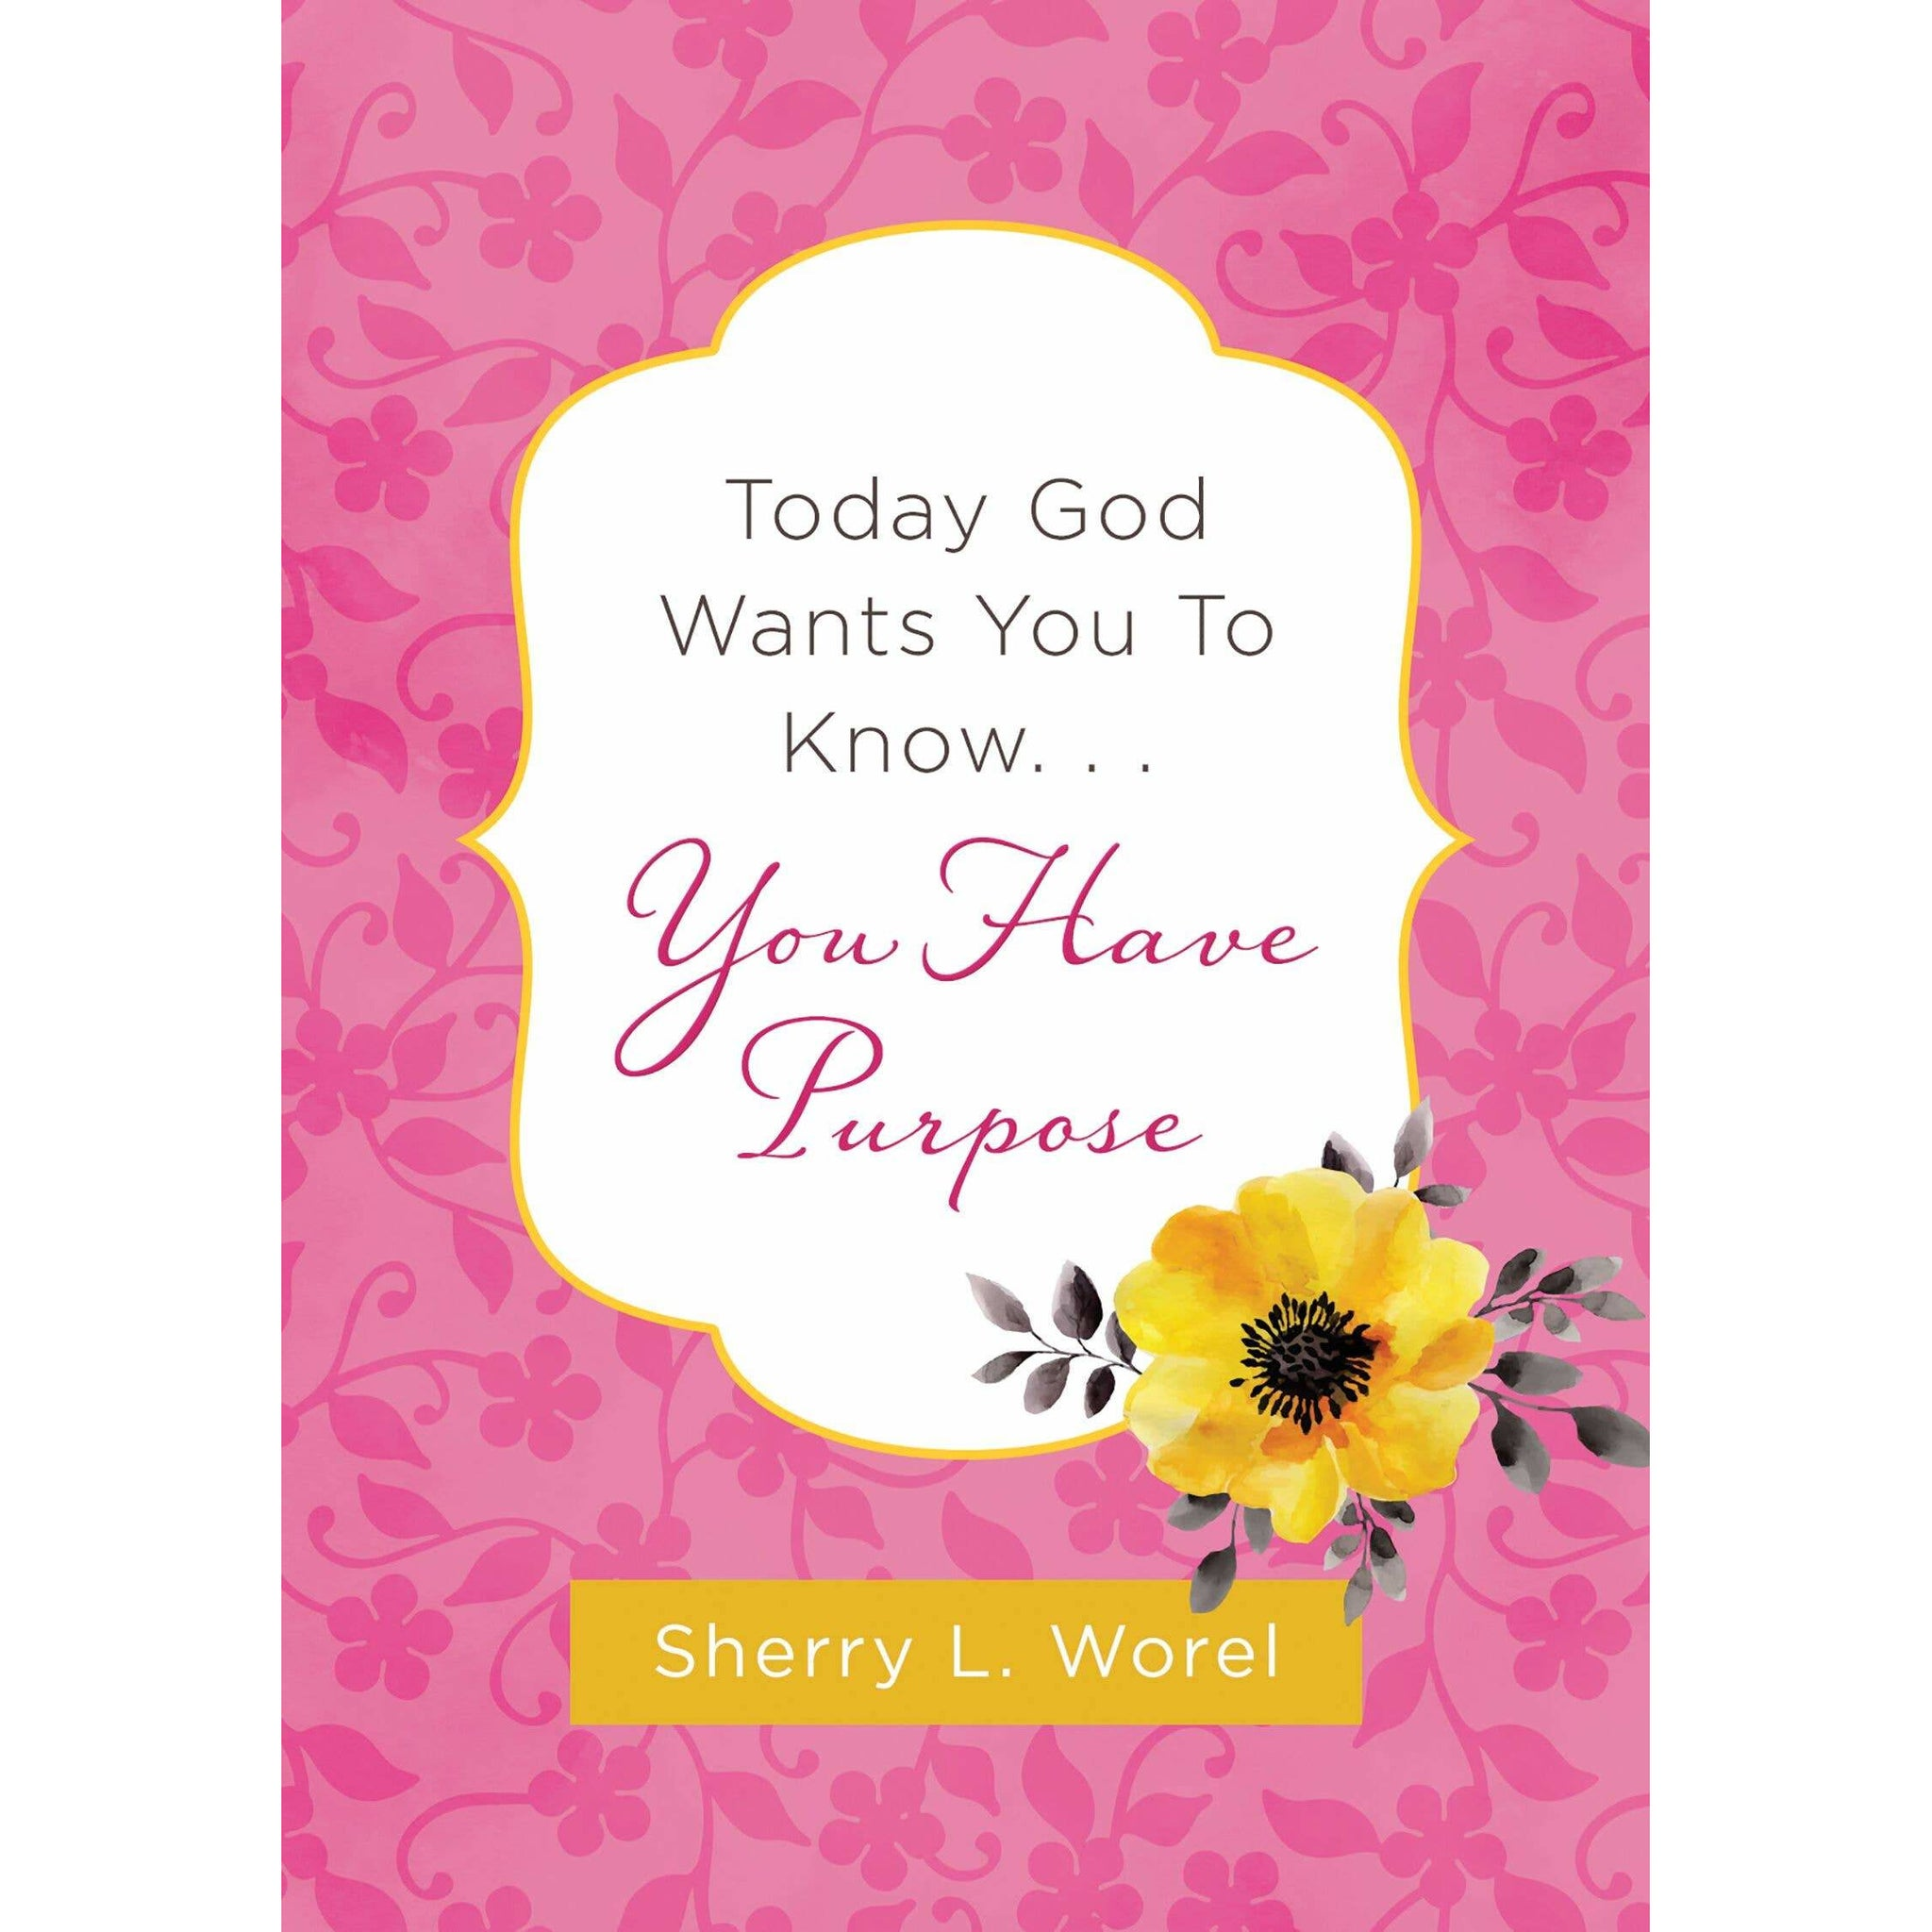 Today God Wants You to Know - You Have Purpose